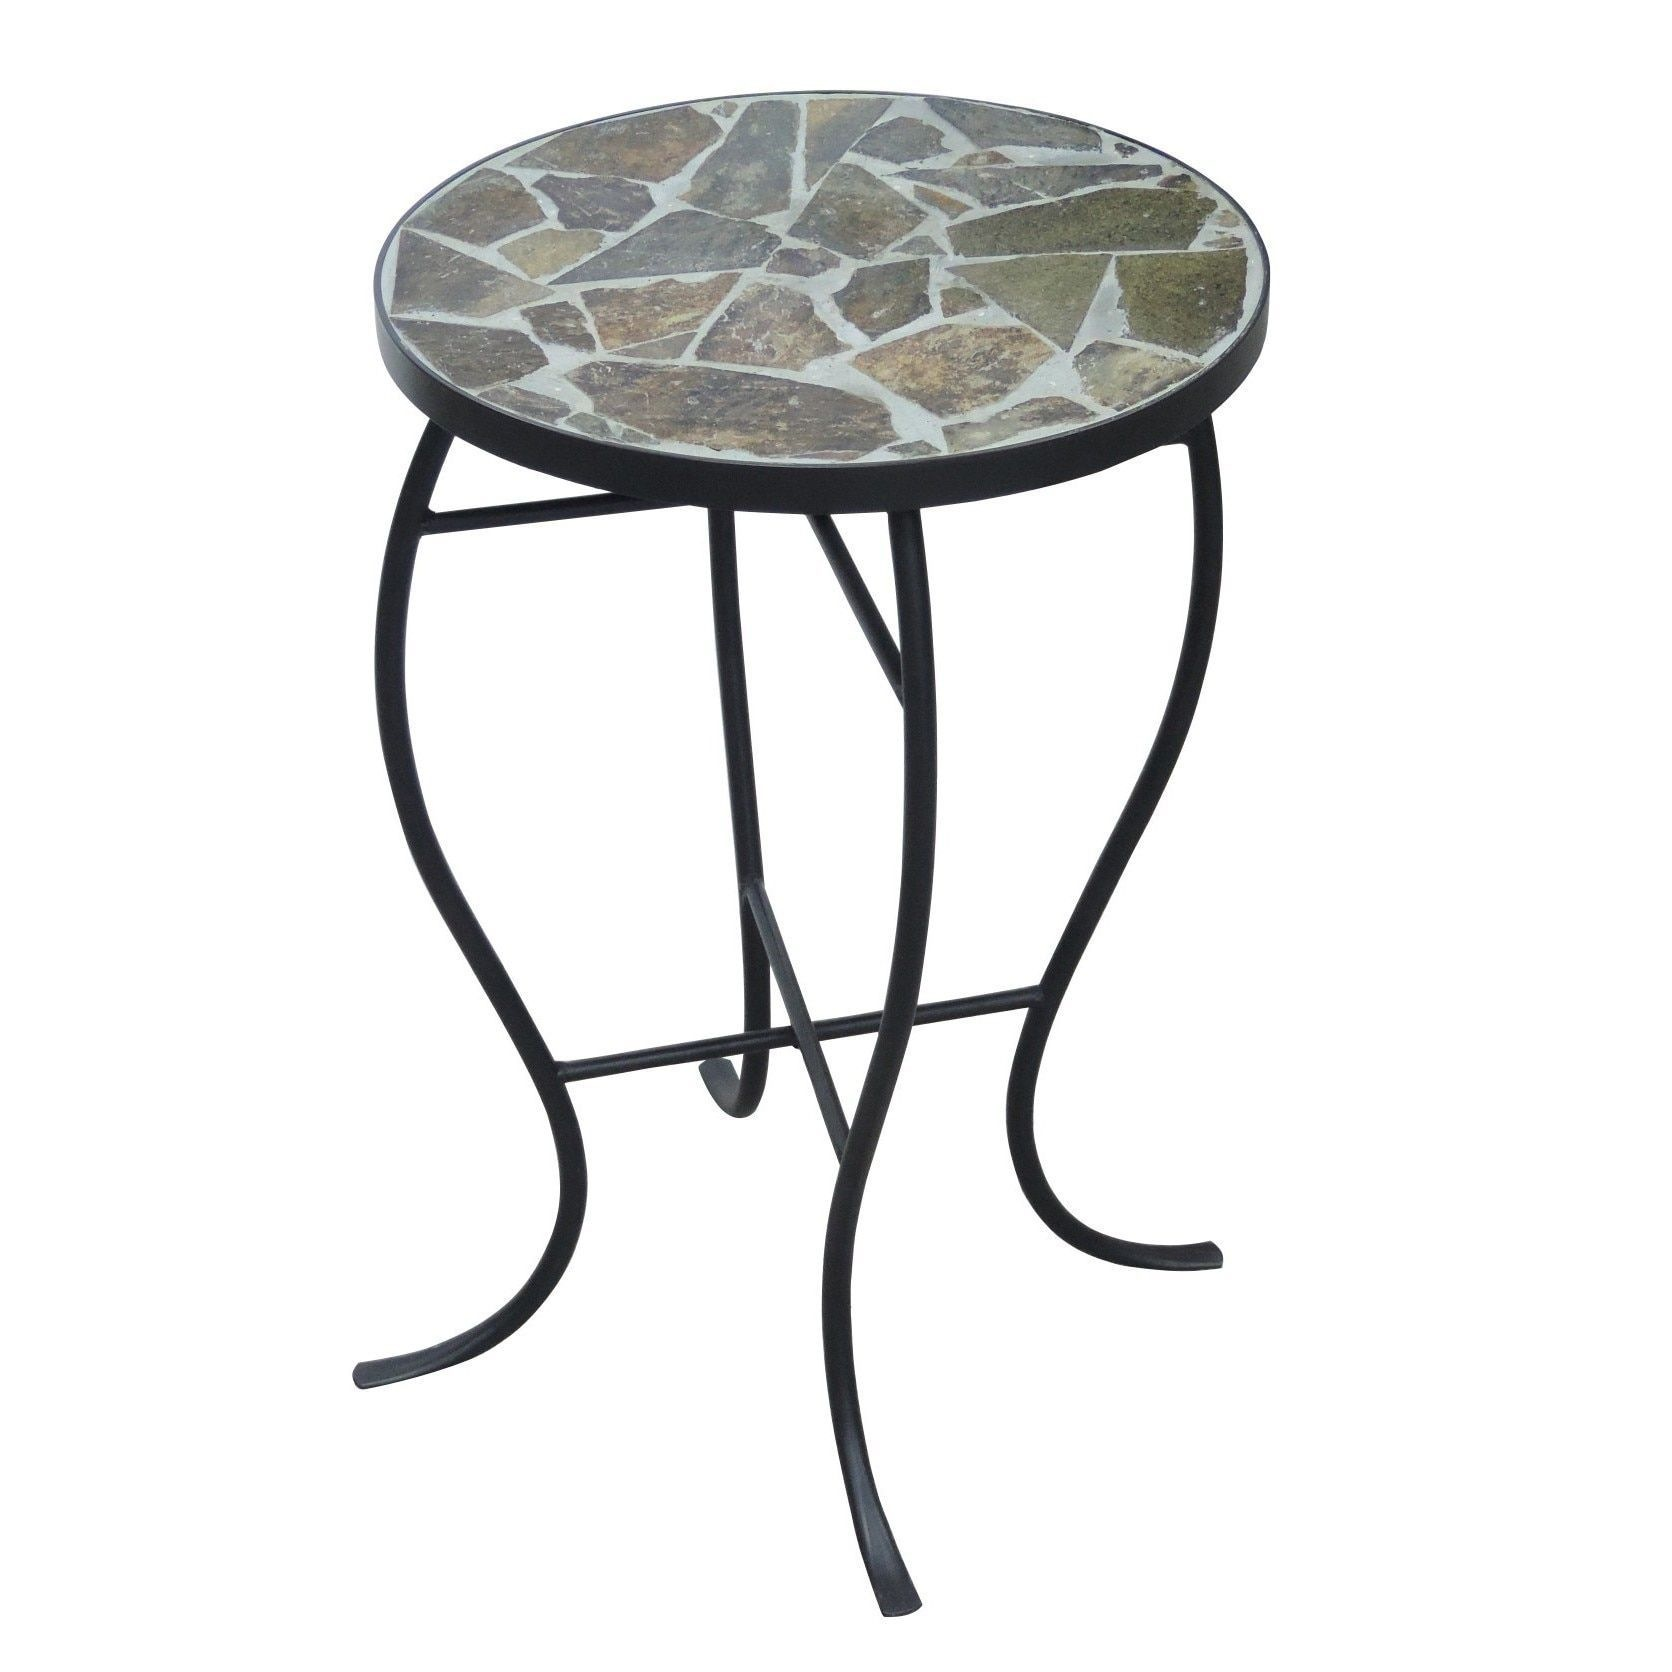 mosaic tile coffee table new outdoor fresh briarwood home decor round side with metal base multi furniture website design small accent lamps for kitchen contemporary wood